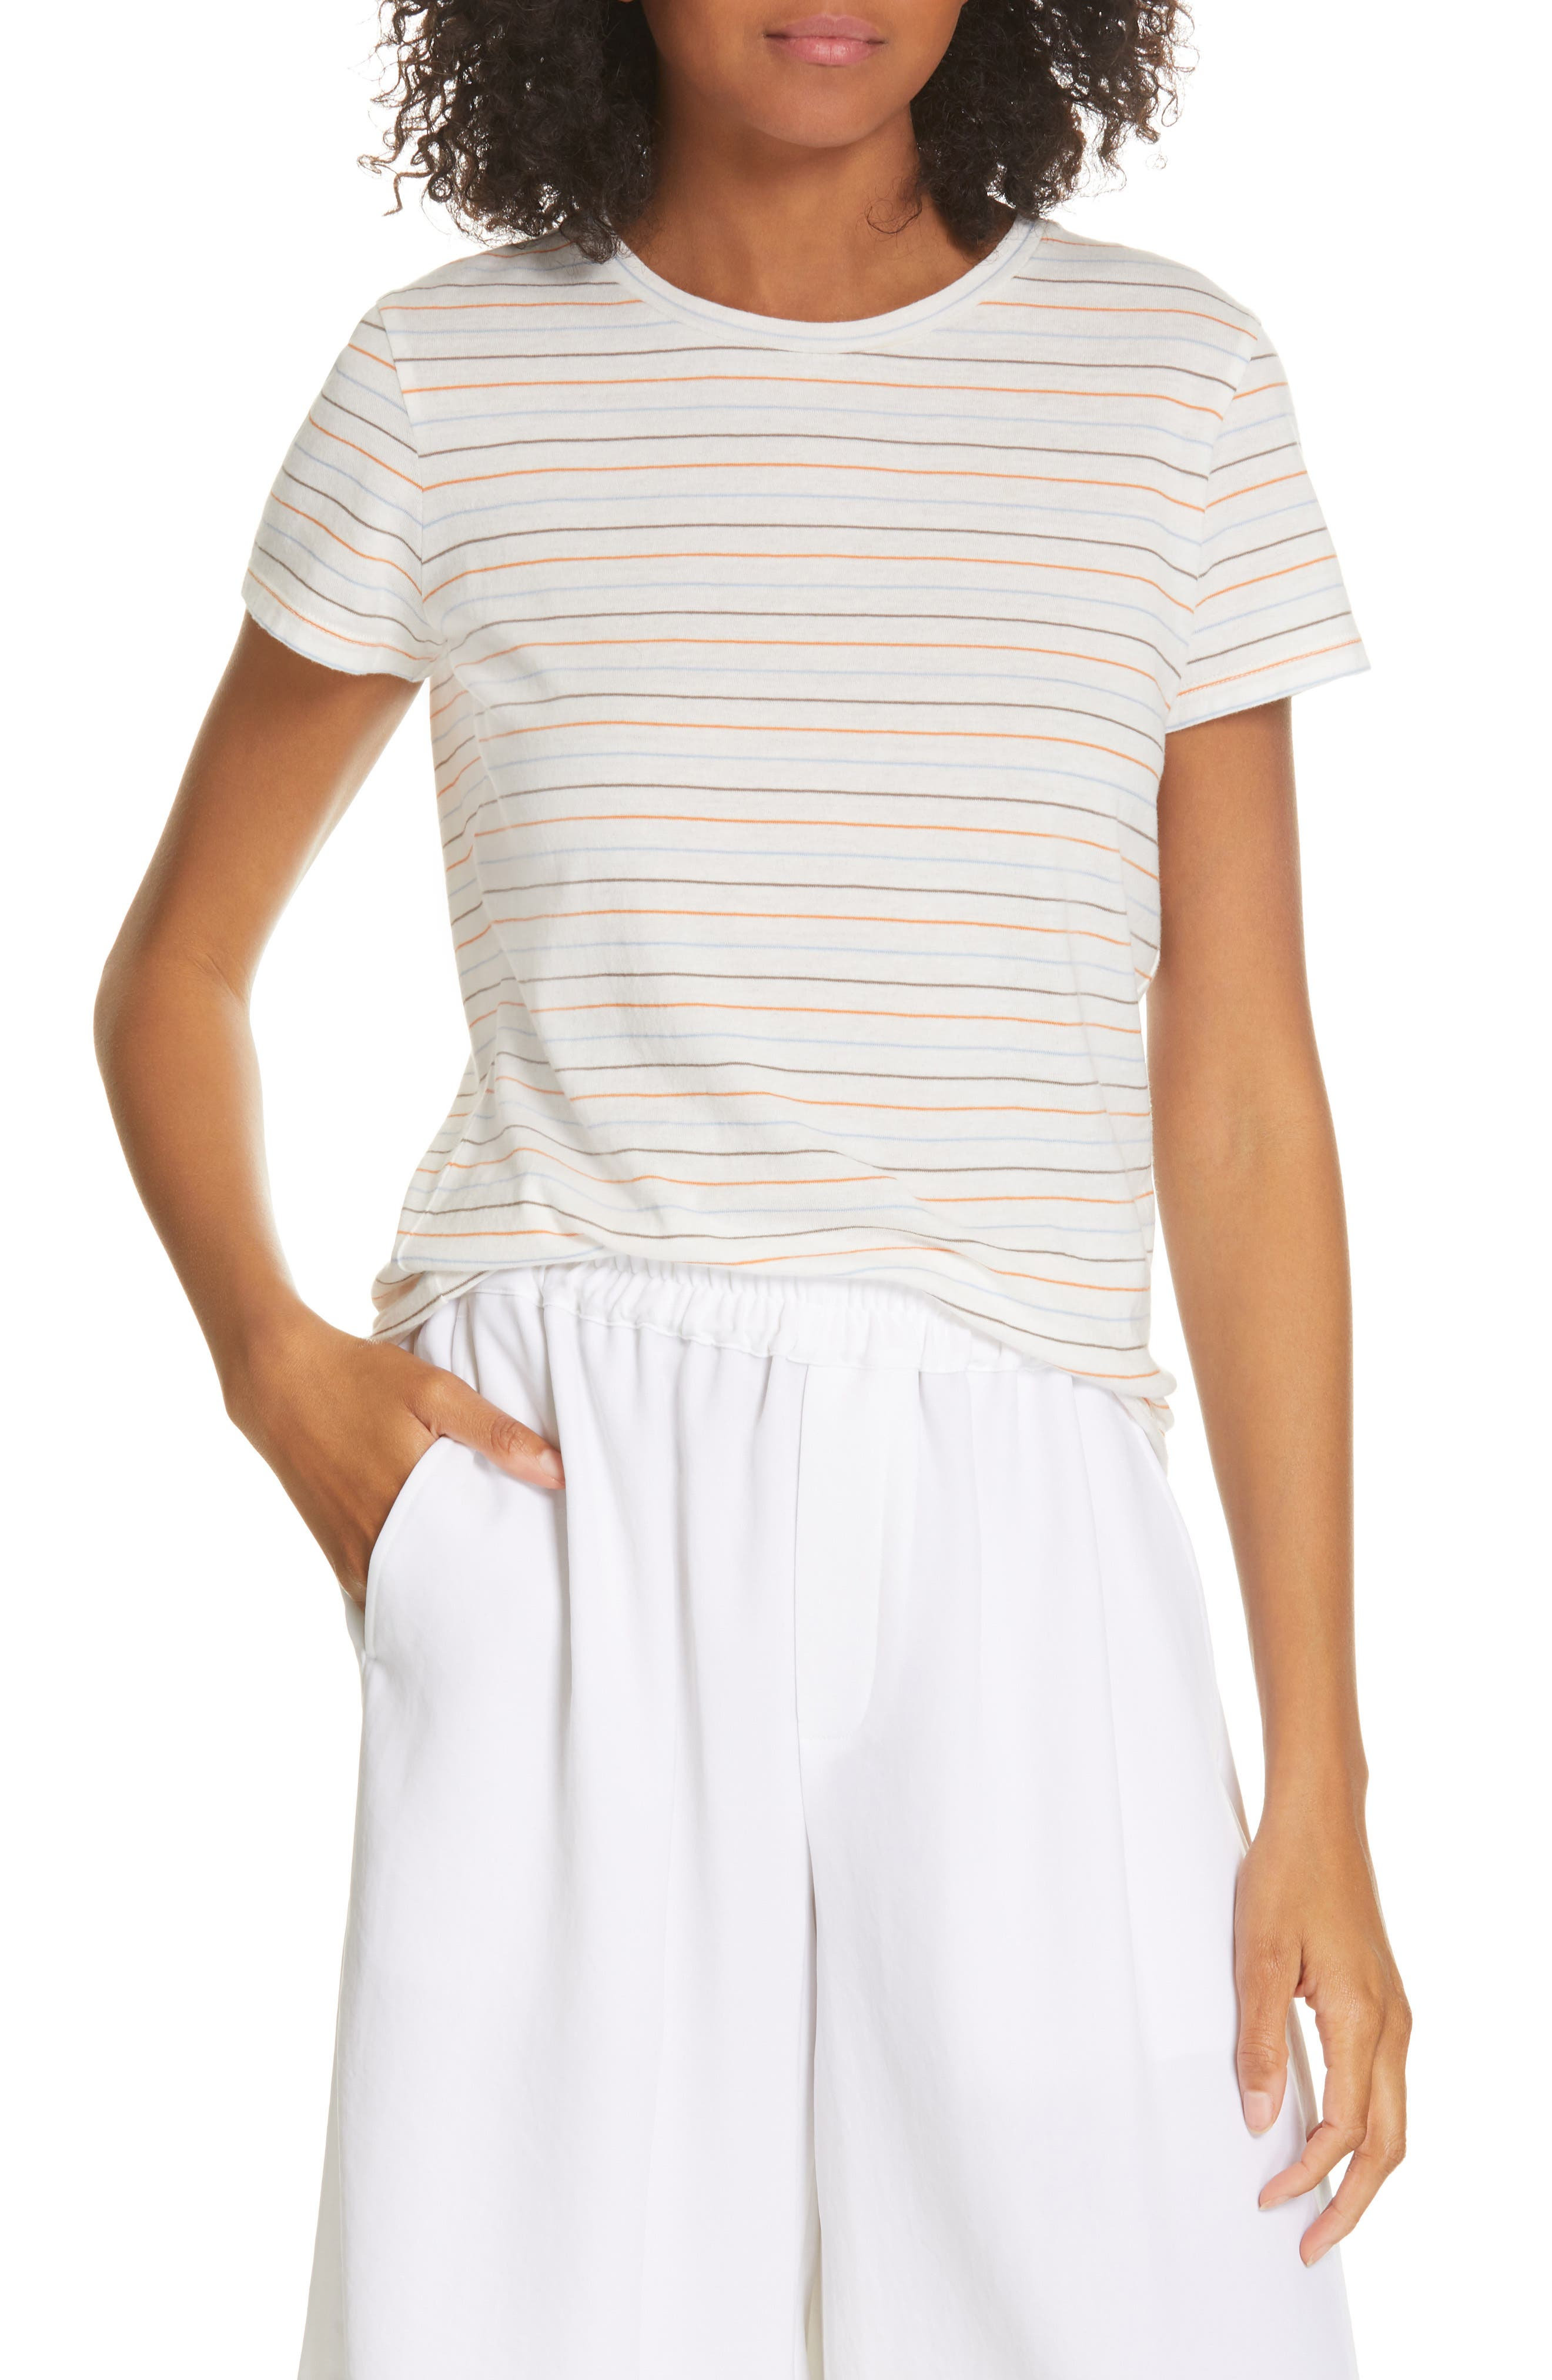 09a6adf0e08 Women's Vince Tops | Nordstrom